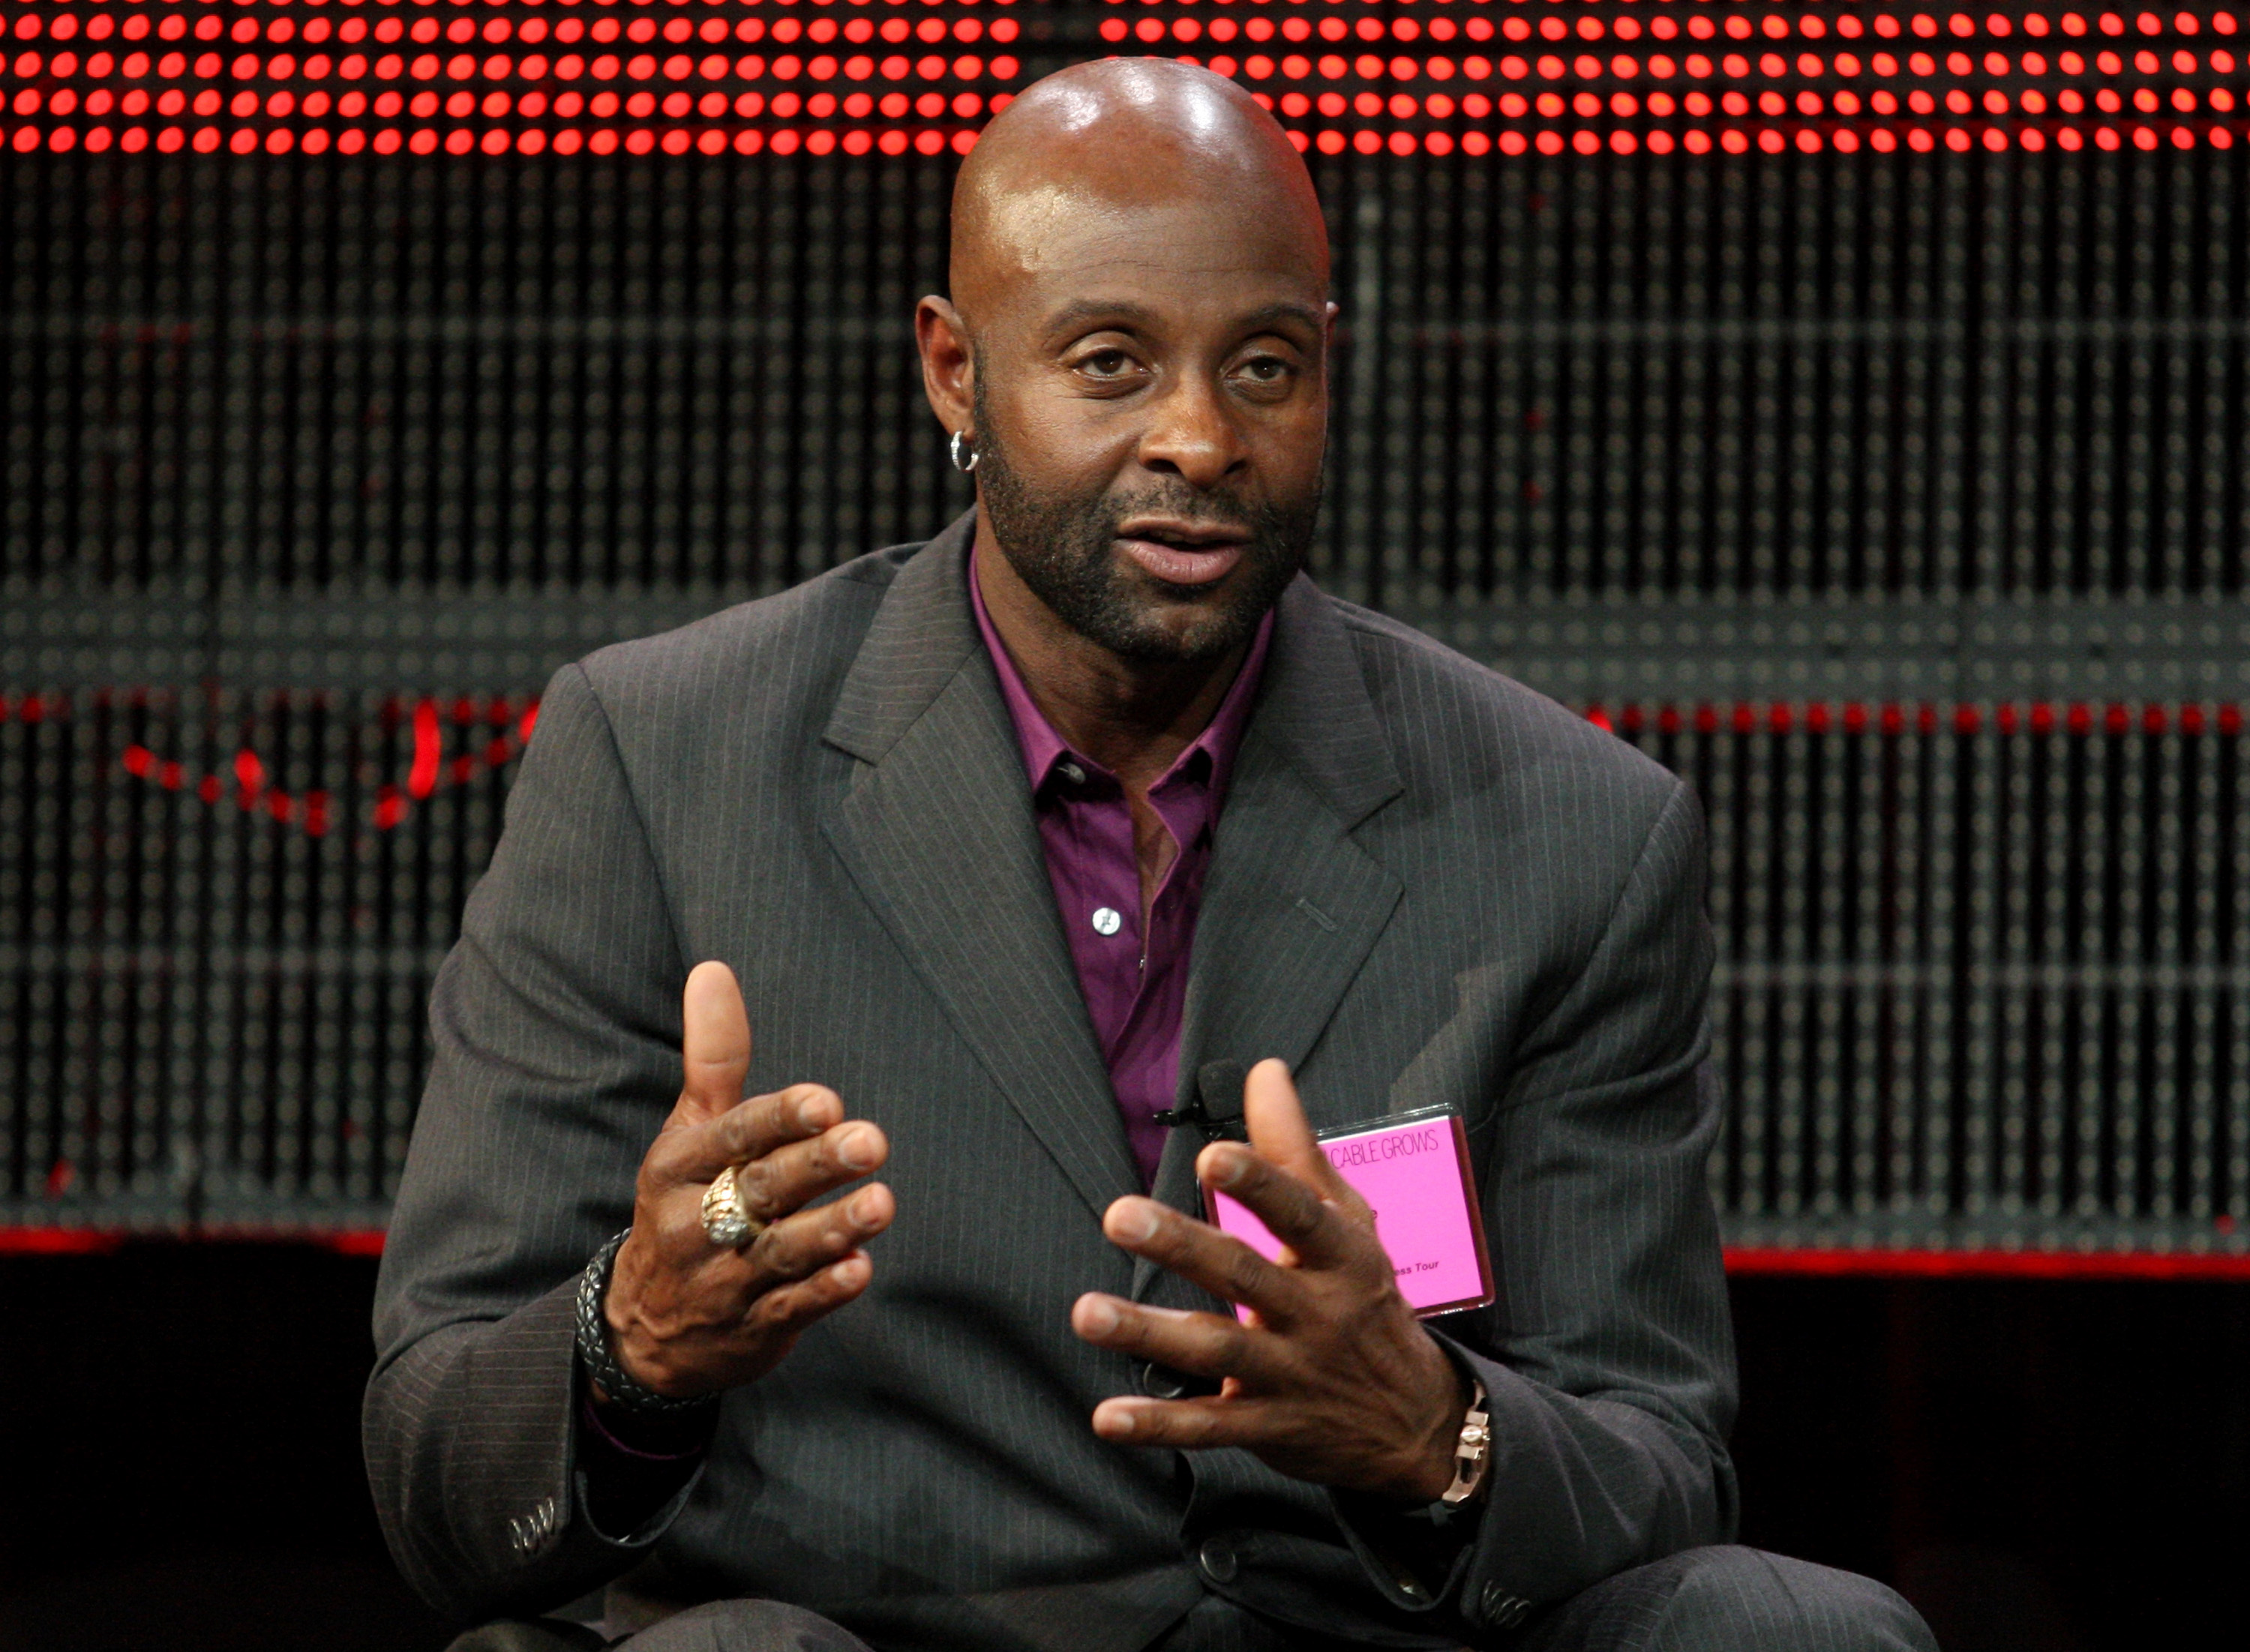 PASADENA, CA - JANUARY 05:  NFL Hall of Famer Jerry Rice speaks onstage during the 'Year of the Quarterback' panel at the ESPN portion of the 2011 Winter TCA press tour held at the Langham Hotel on January 5, 2011 in Pasadena, California.  (Photo by Frede